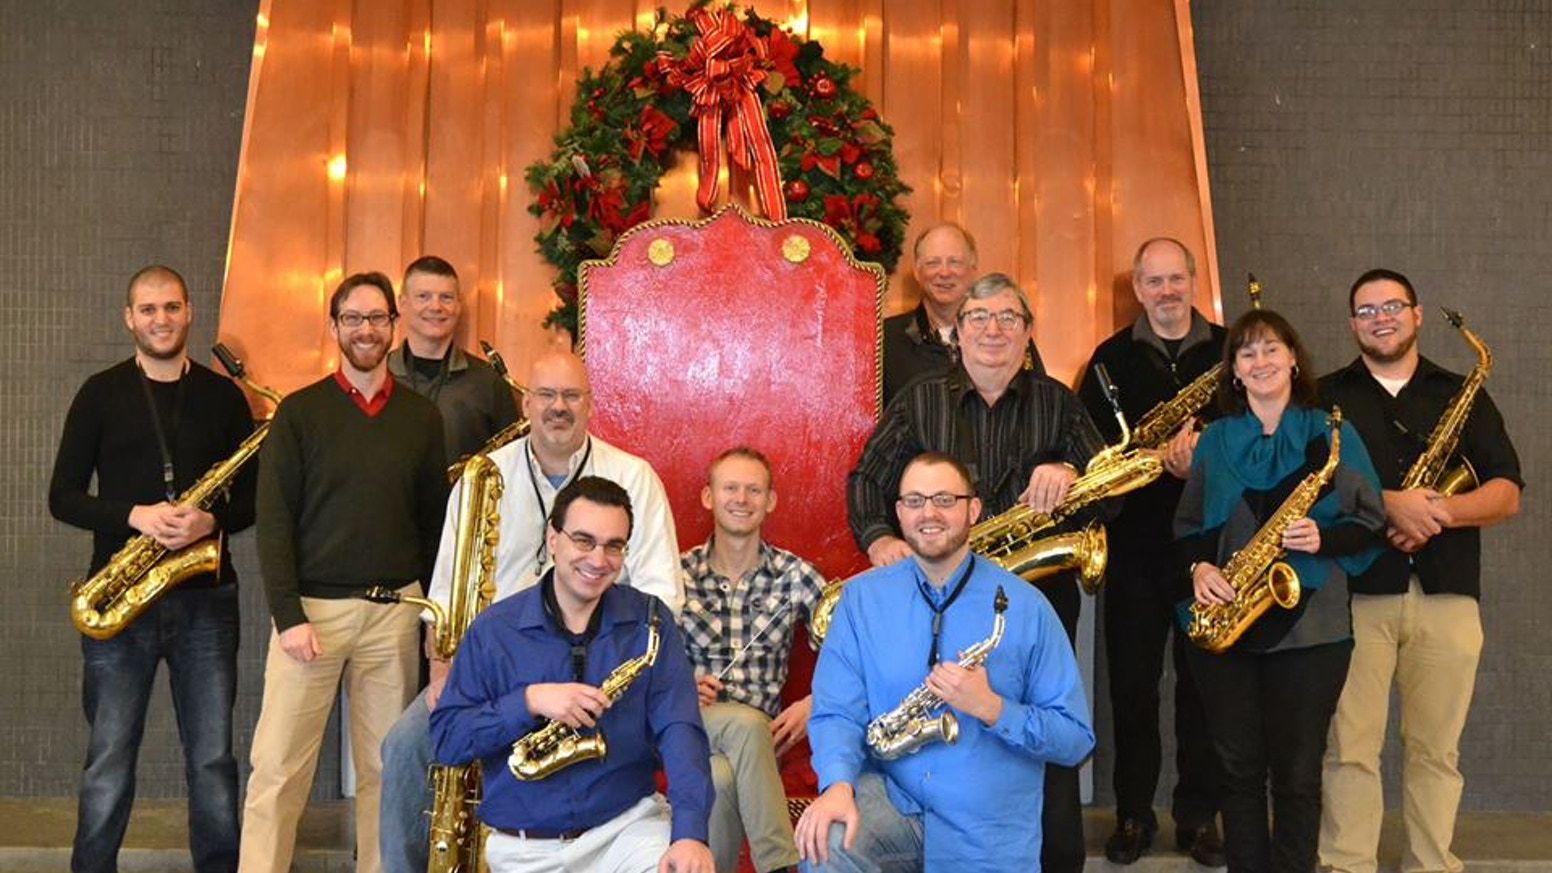 the hudson valley saxophone orchestra is seeking assistance for funding production costs for our 2014 christmas cd - Christmas Assistance 2014